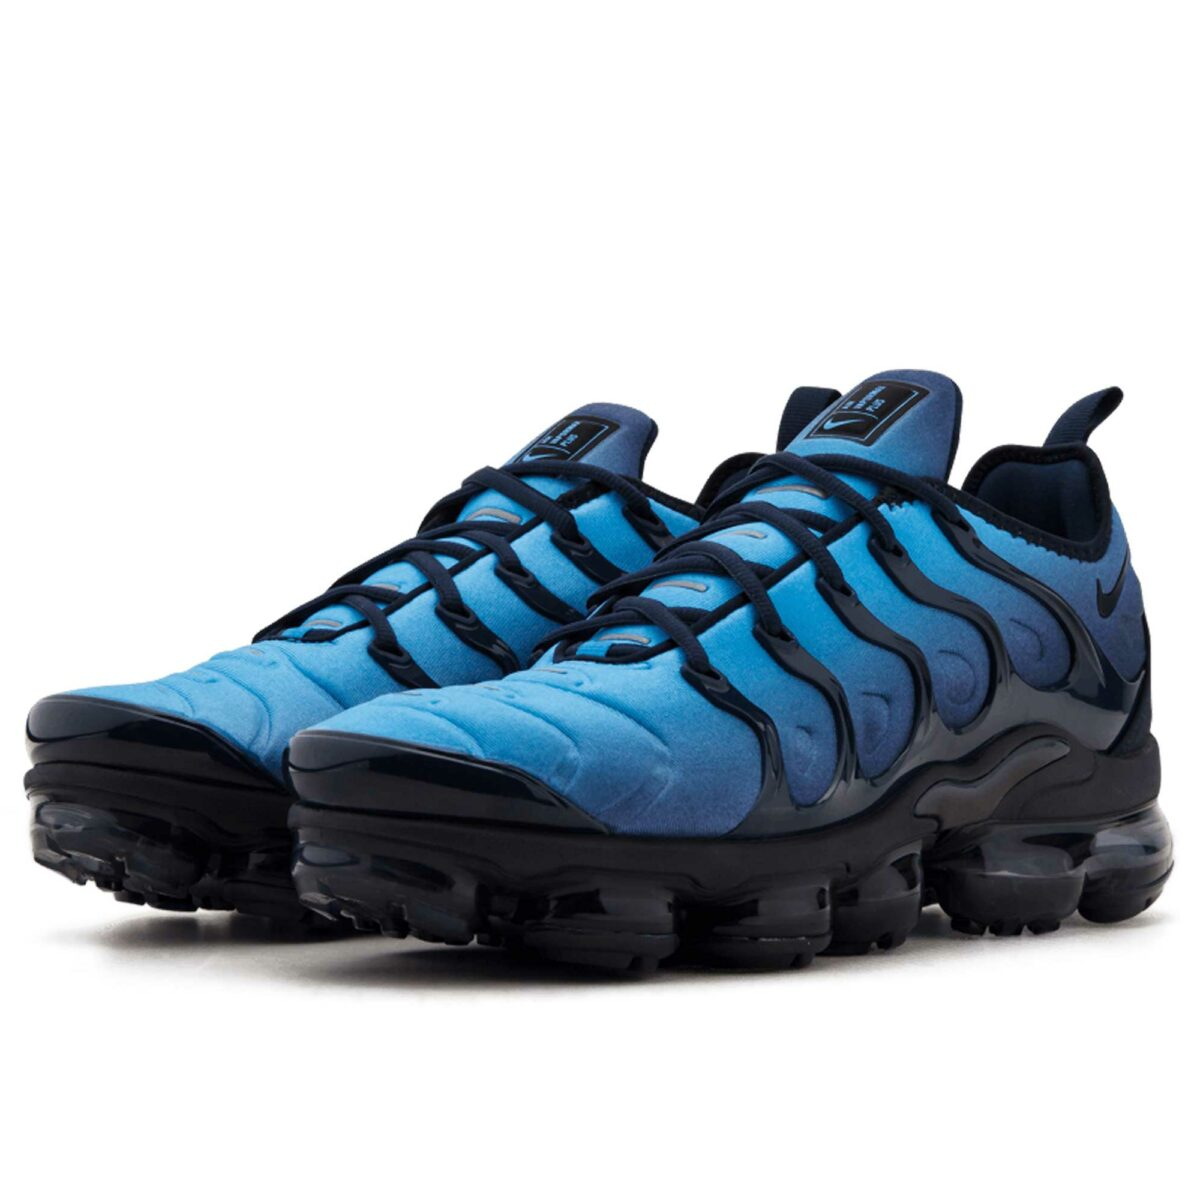 nike air vapormax plus blue 24453_401 купить